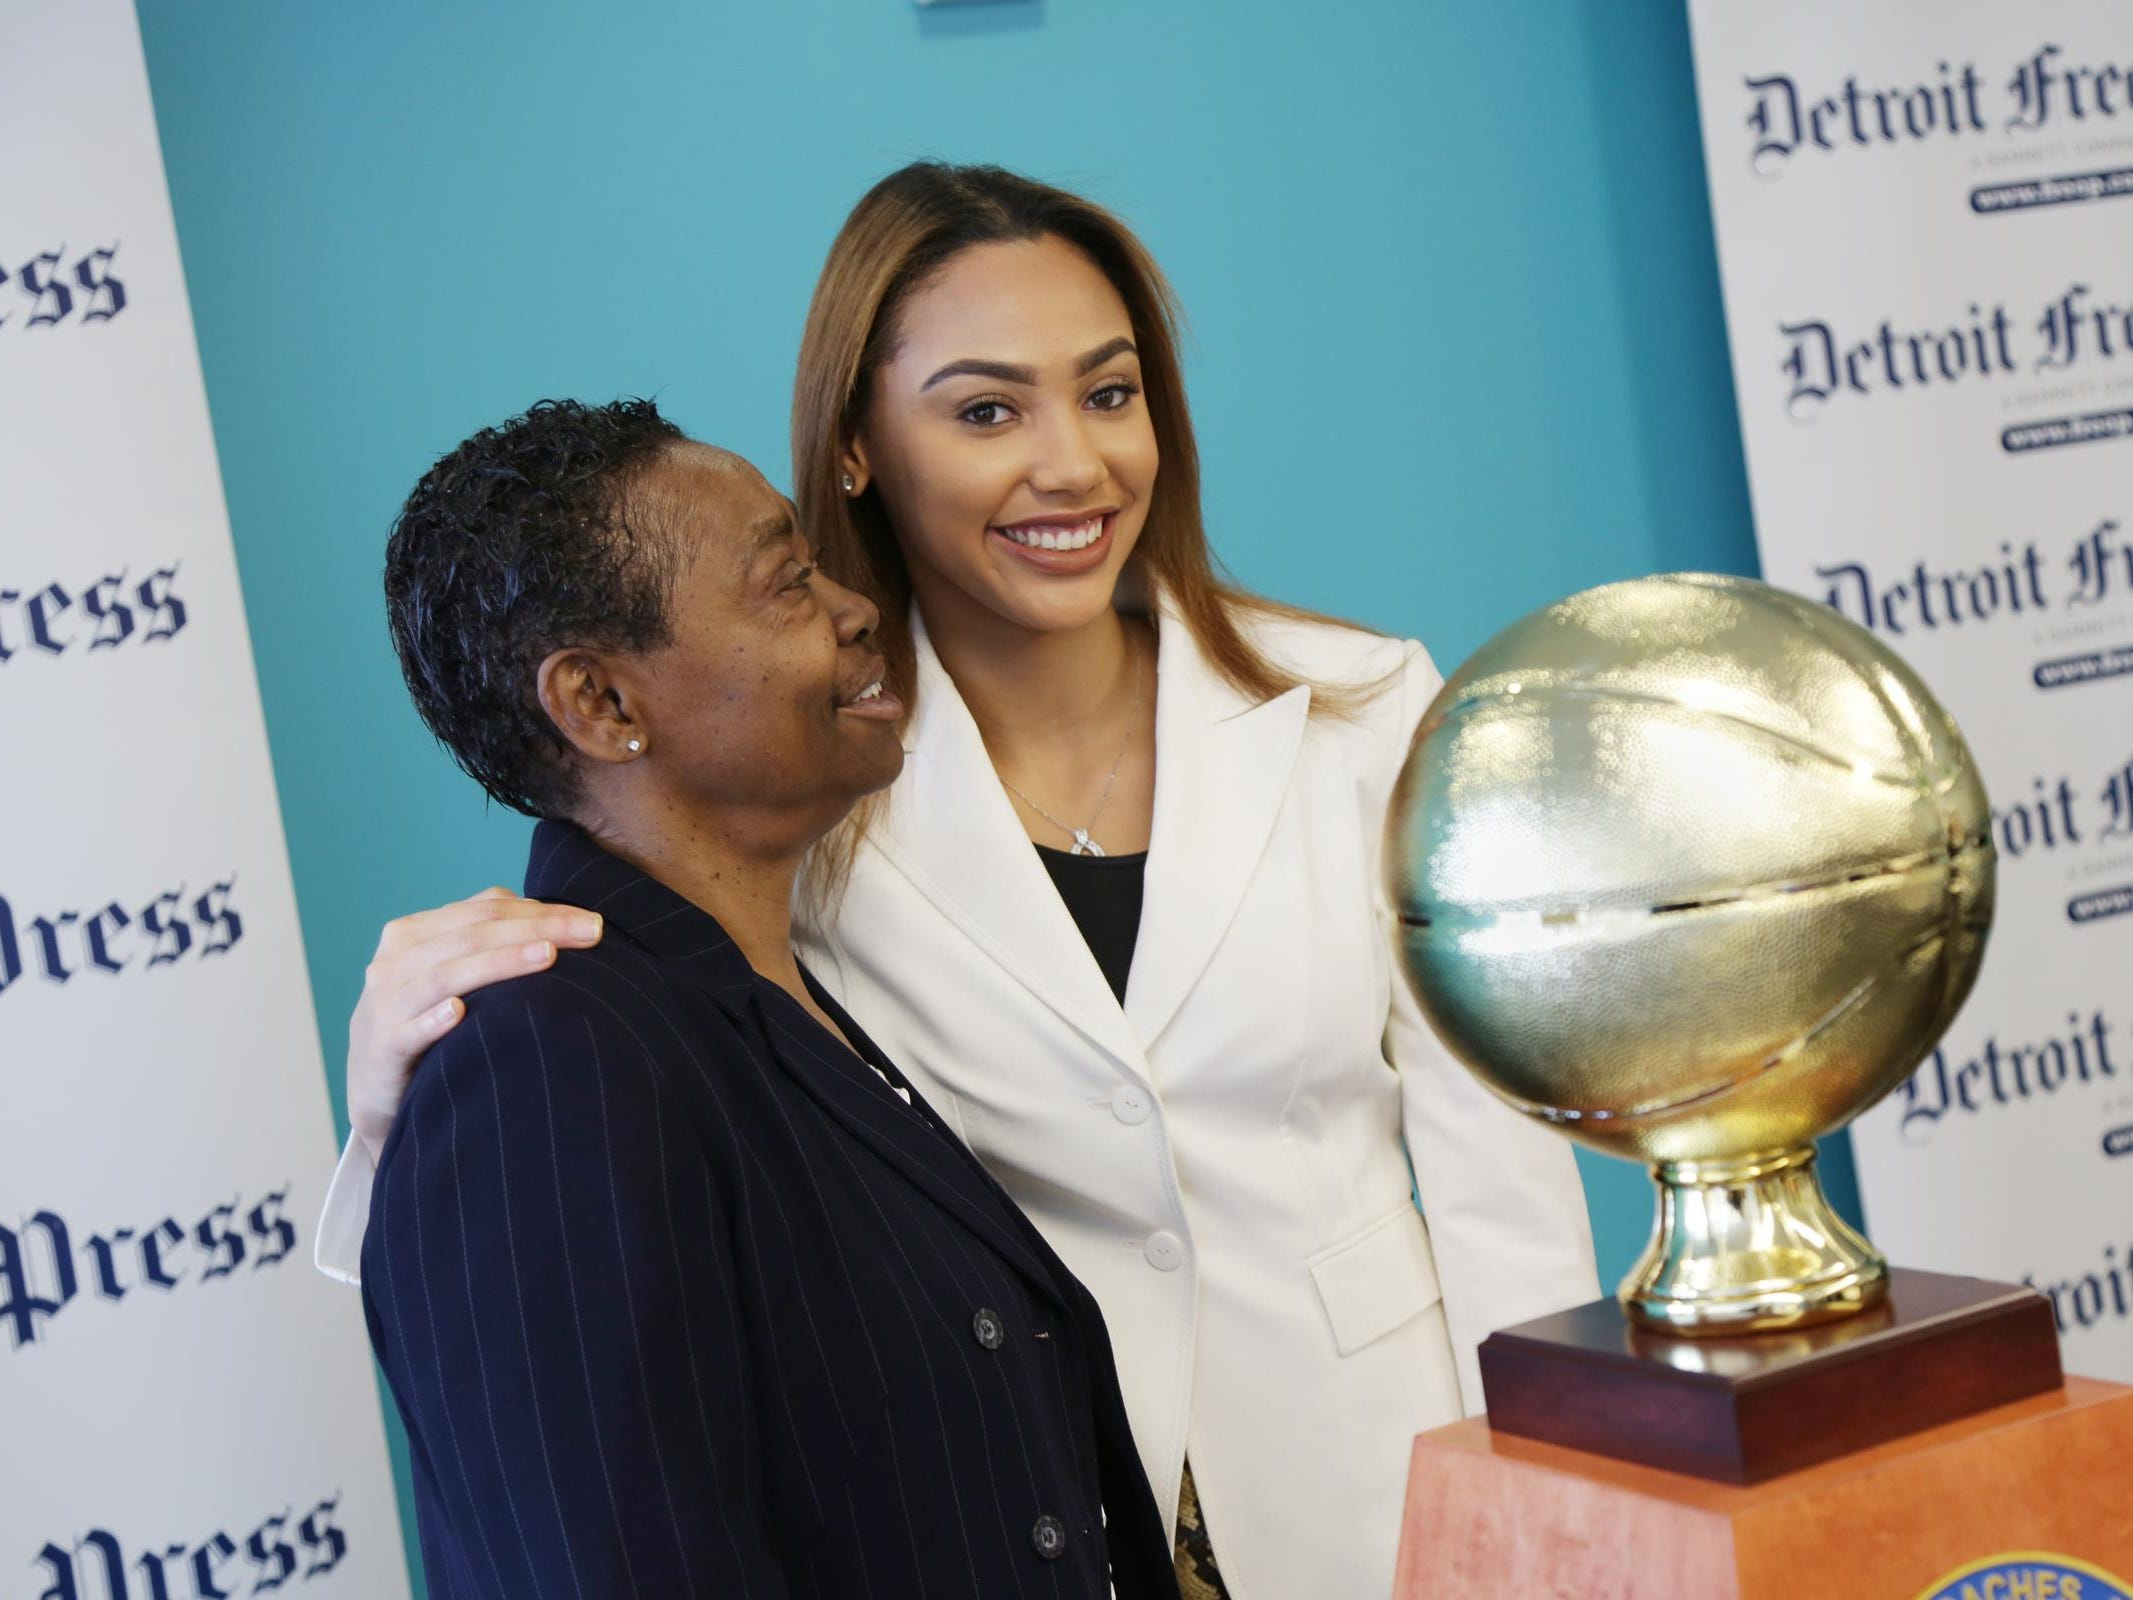 Miss Basketball 2016 Kysre Gondrezick brings her grandmother, Ruth Harvey, into the picture with the trophy.